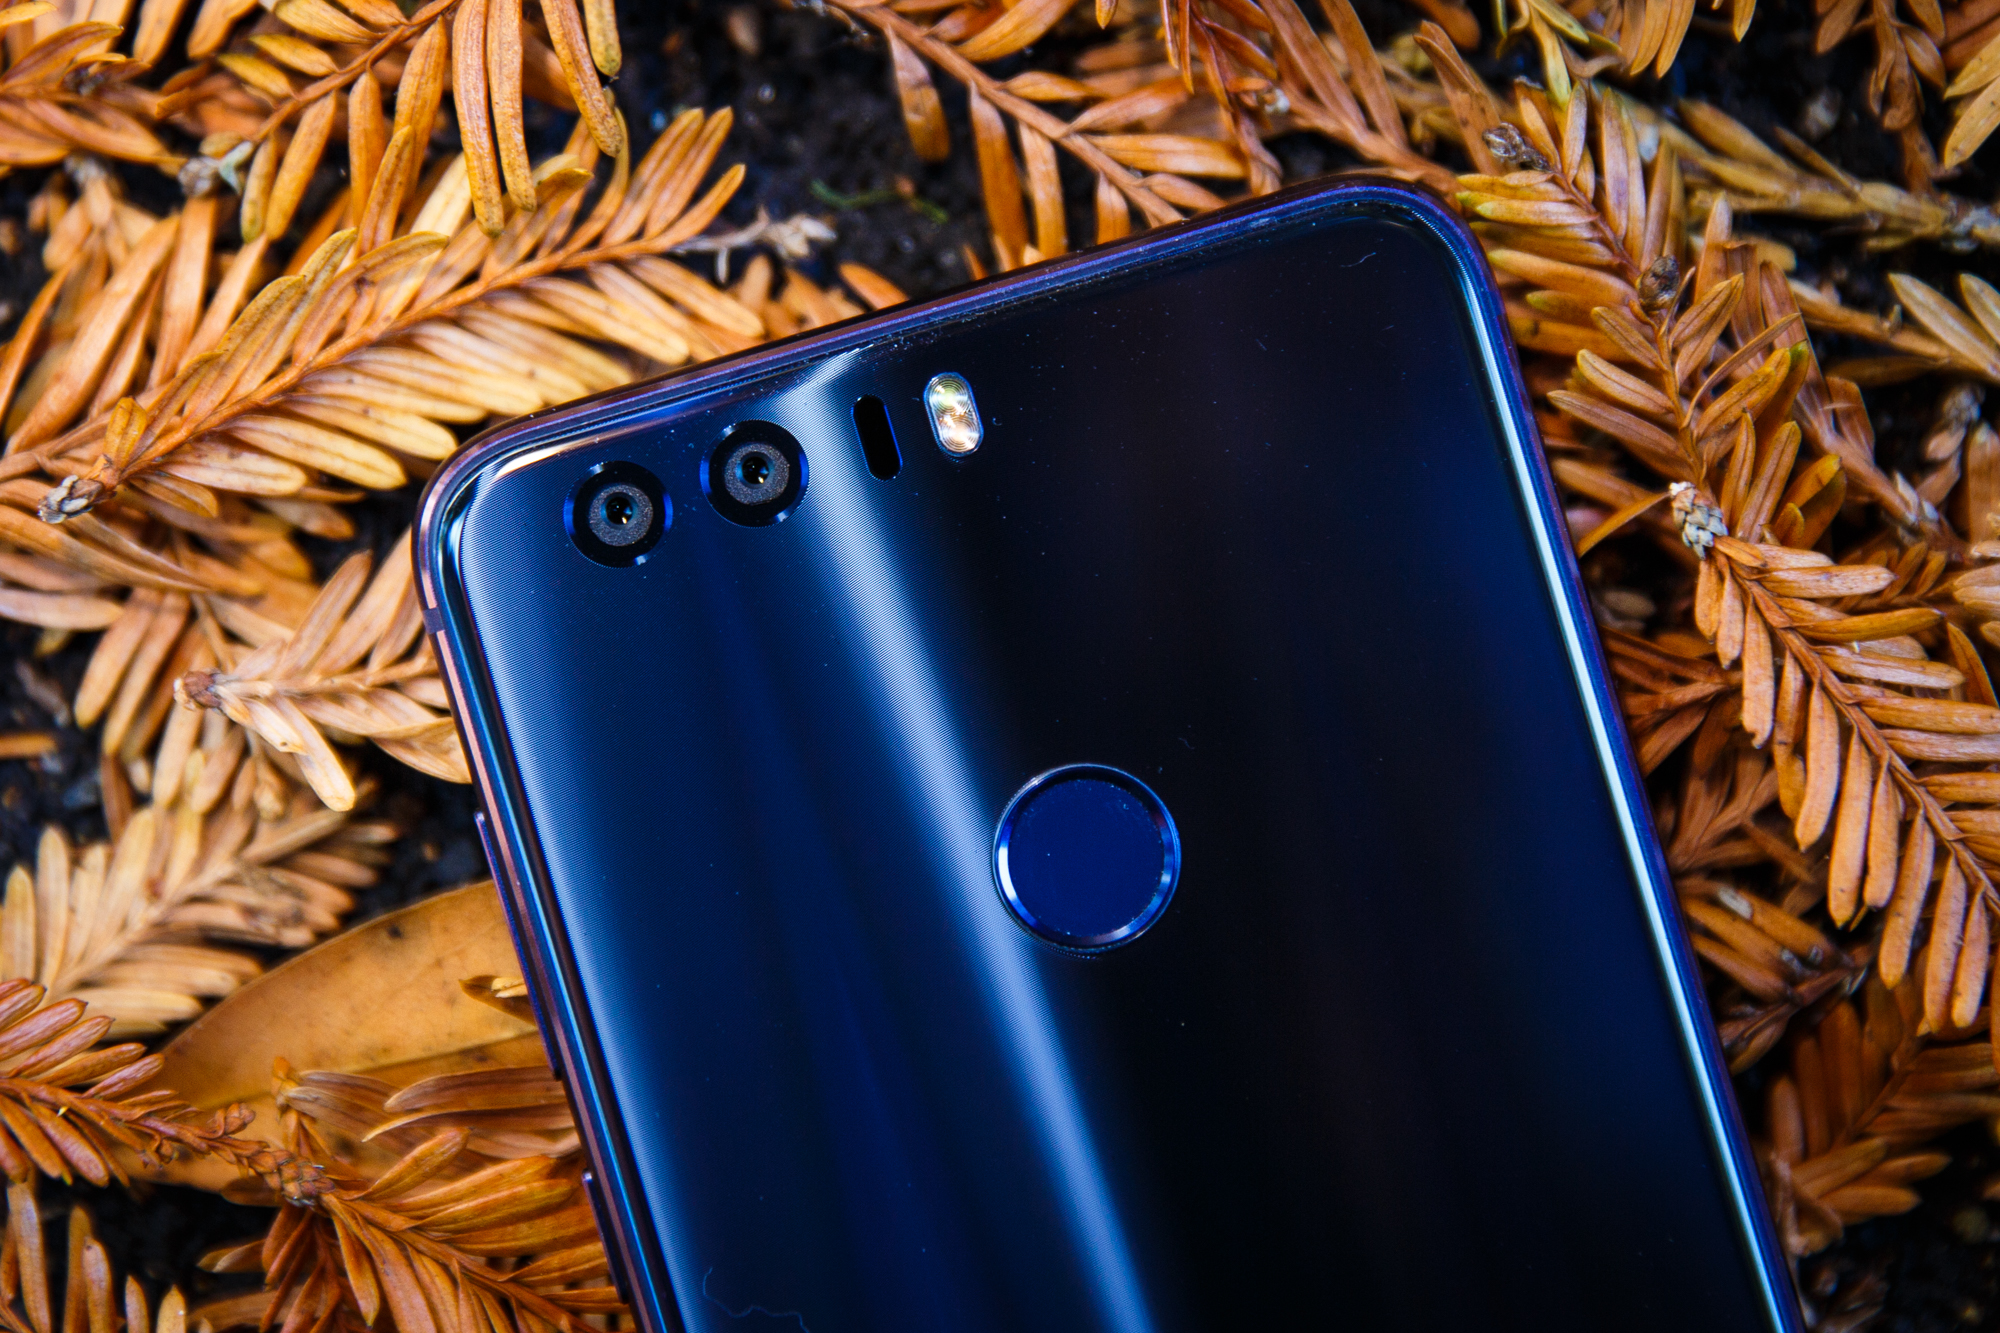 Huawei Honor 8 review: Two cameras, at half the iPhone 7 Plus price - Page  2 - CNET